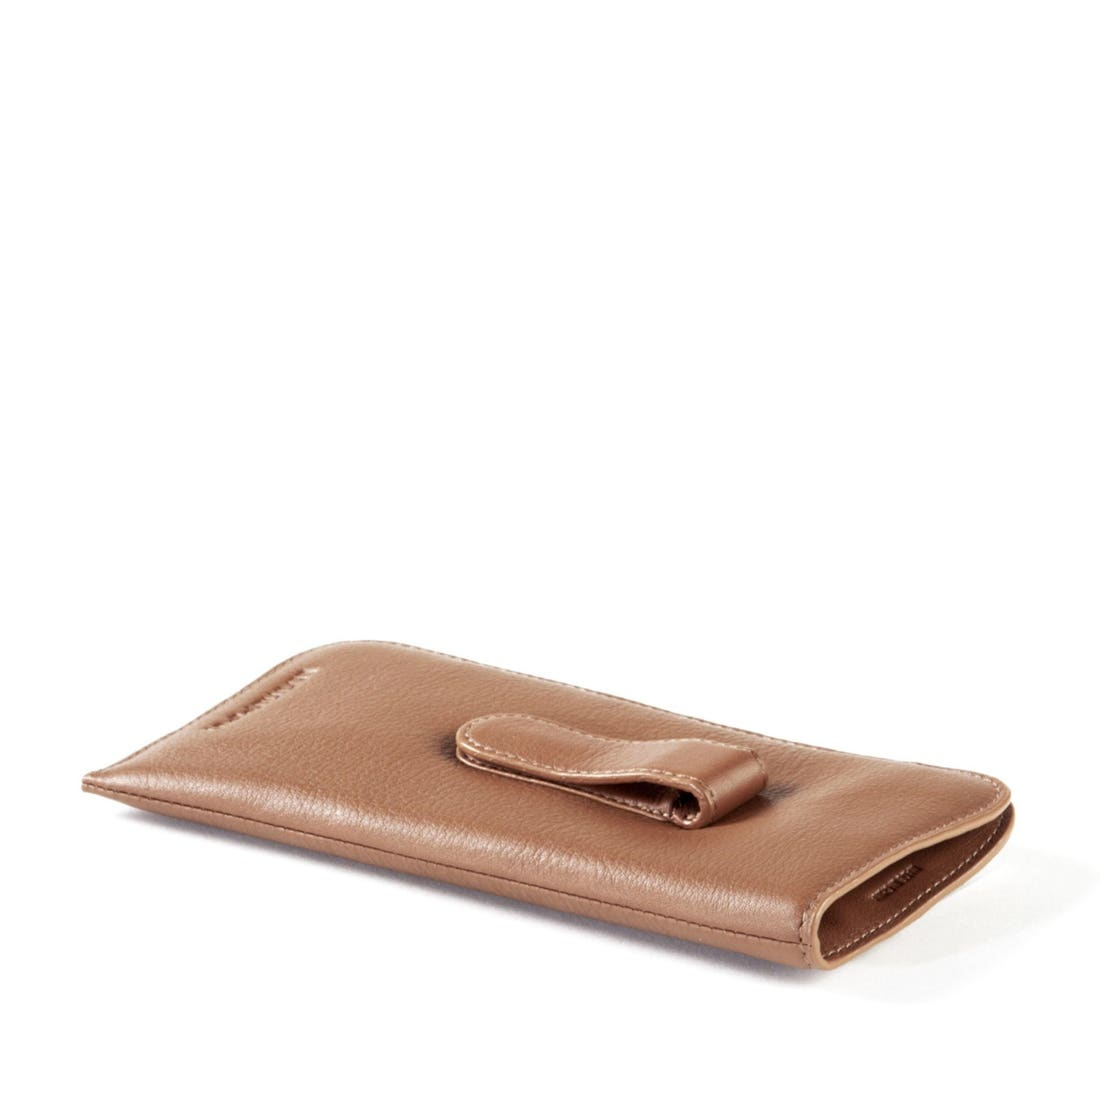 Soft Eyeglass Case with Clip